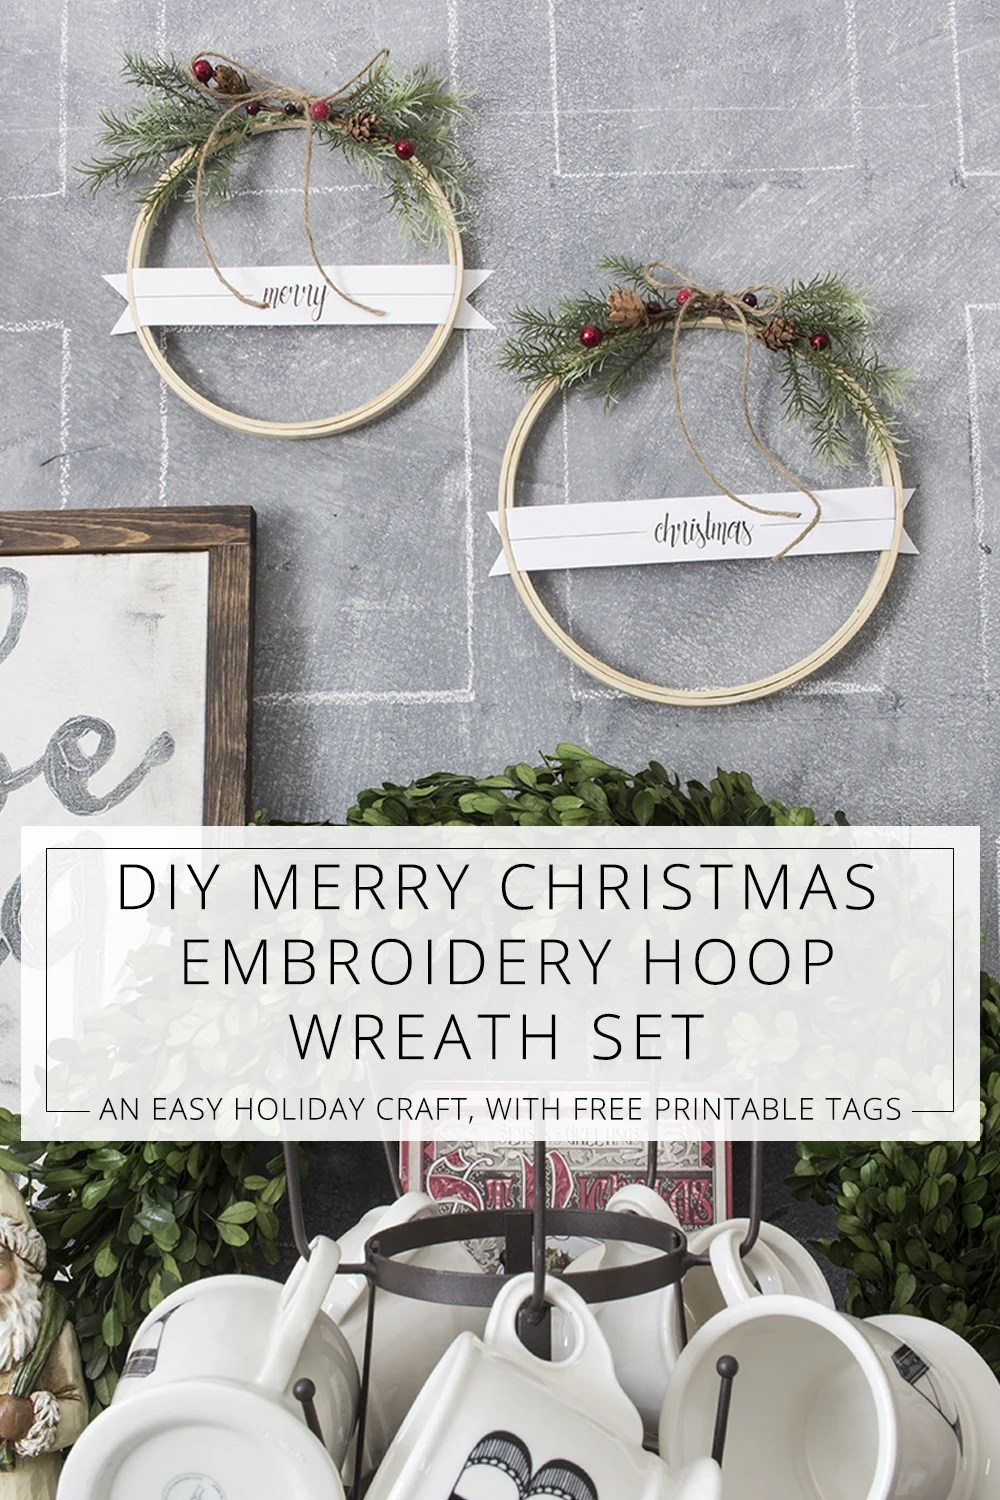 diy merry christmas embroidery hoop wreath set with free printables